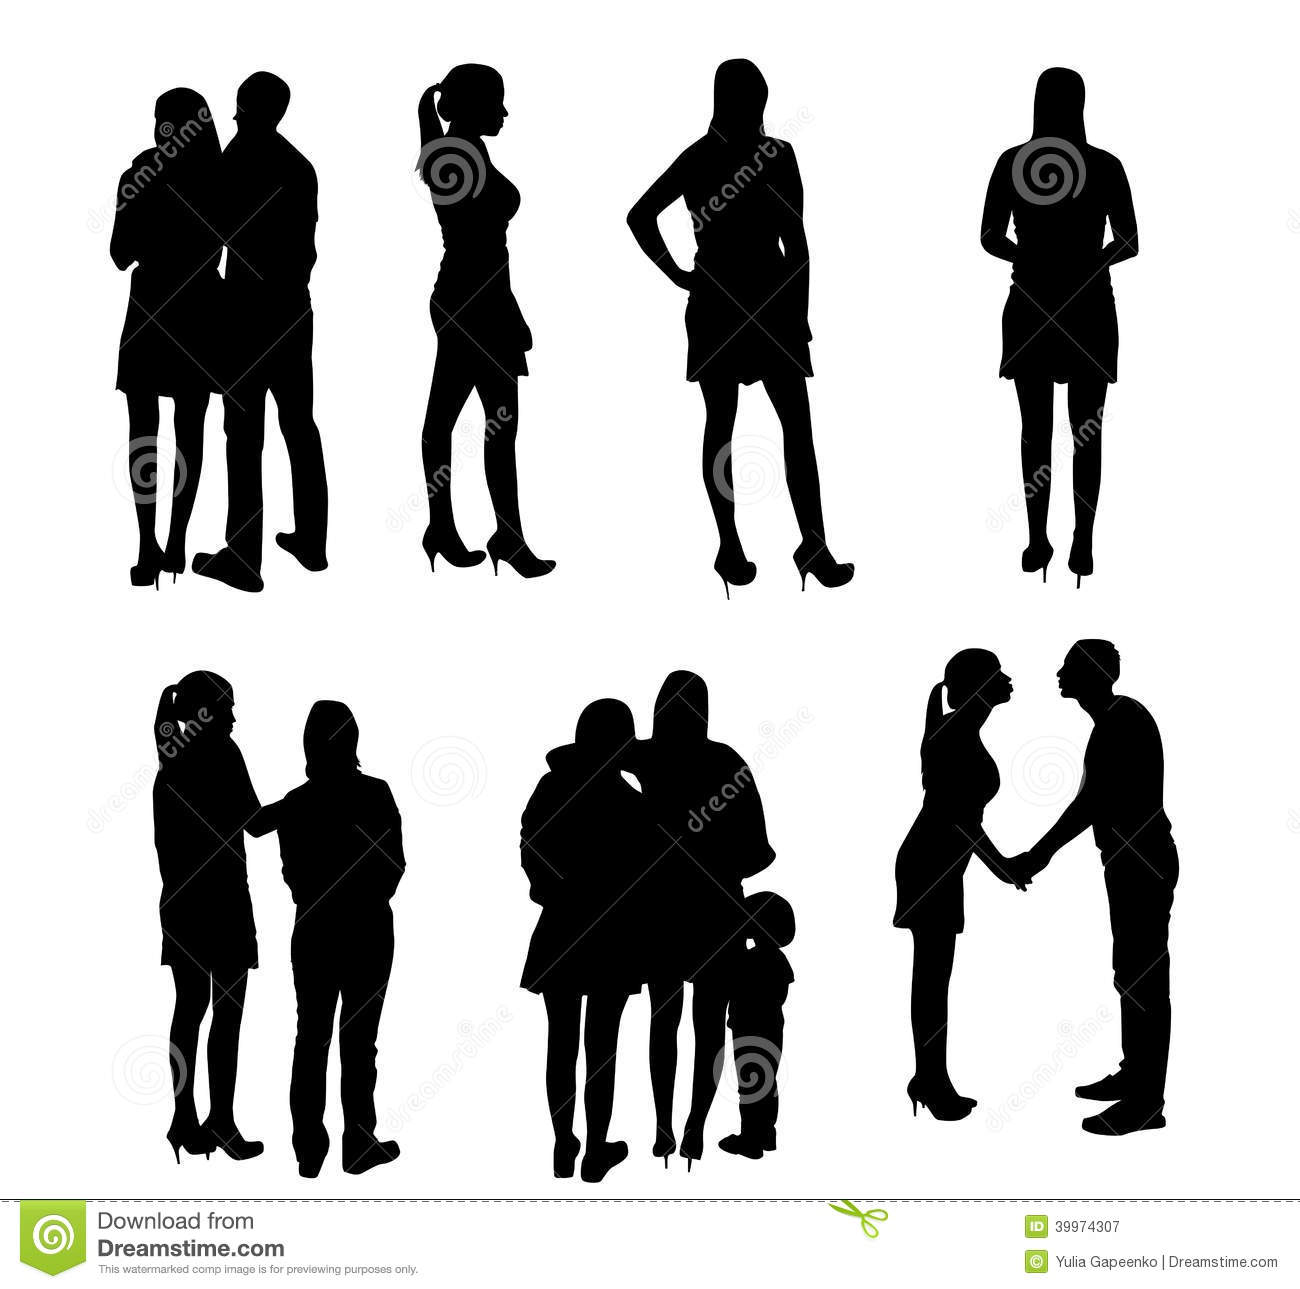 Silhouette People Vector Illustrations